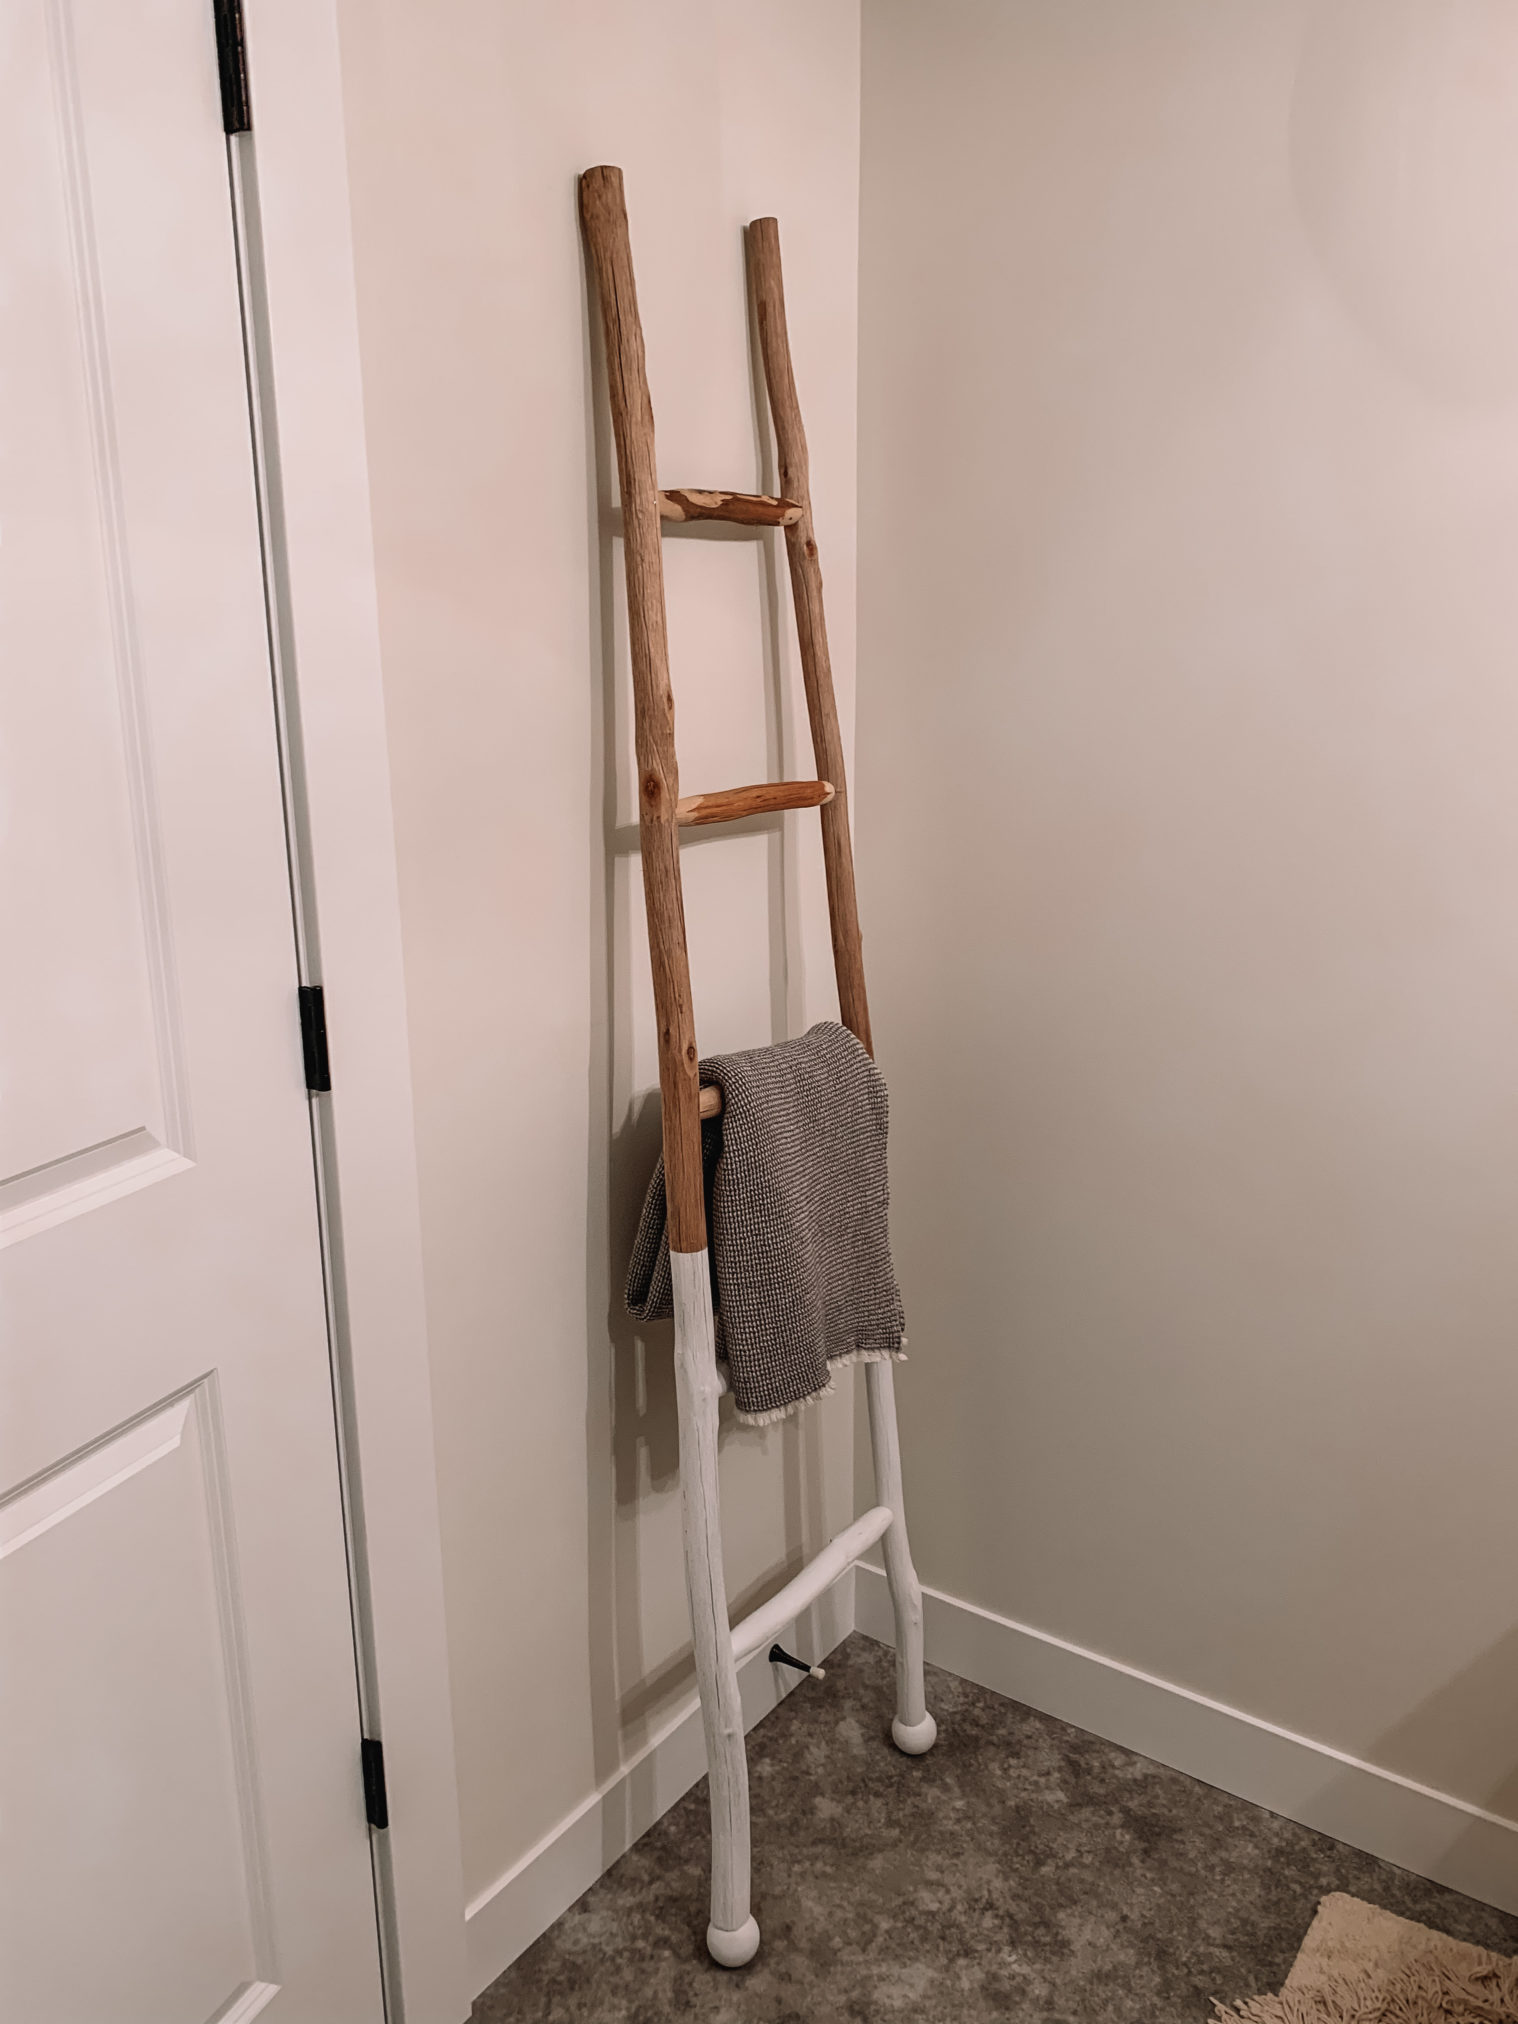 amazon home, amazon home decor, blanket ladder, affordable blanket ladder, towel holder